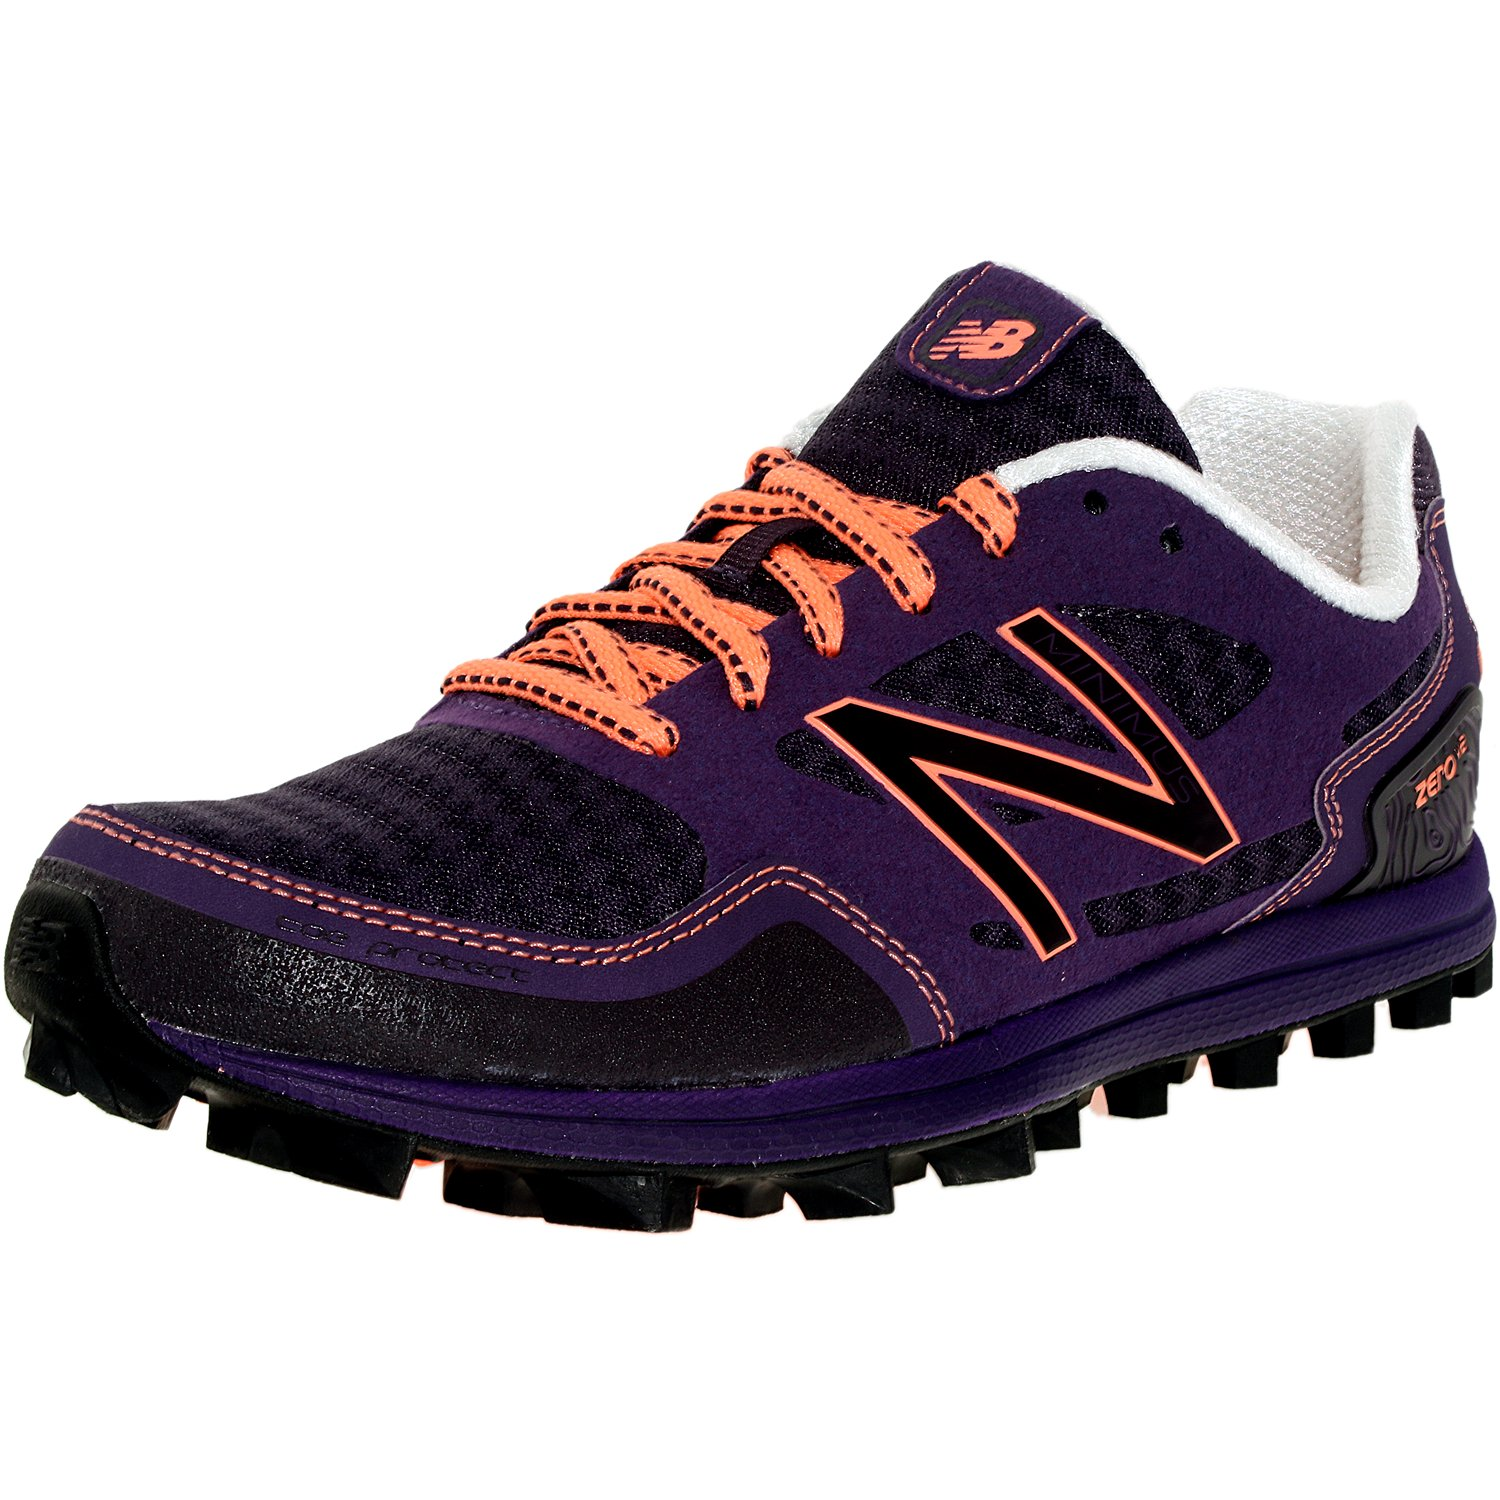 New Balance Women's Trail Running Purple/Pink Ankle-High Shoe - 10M